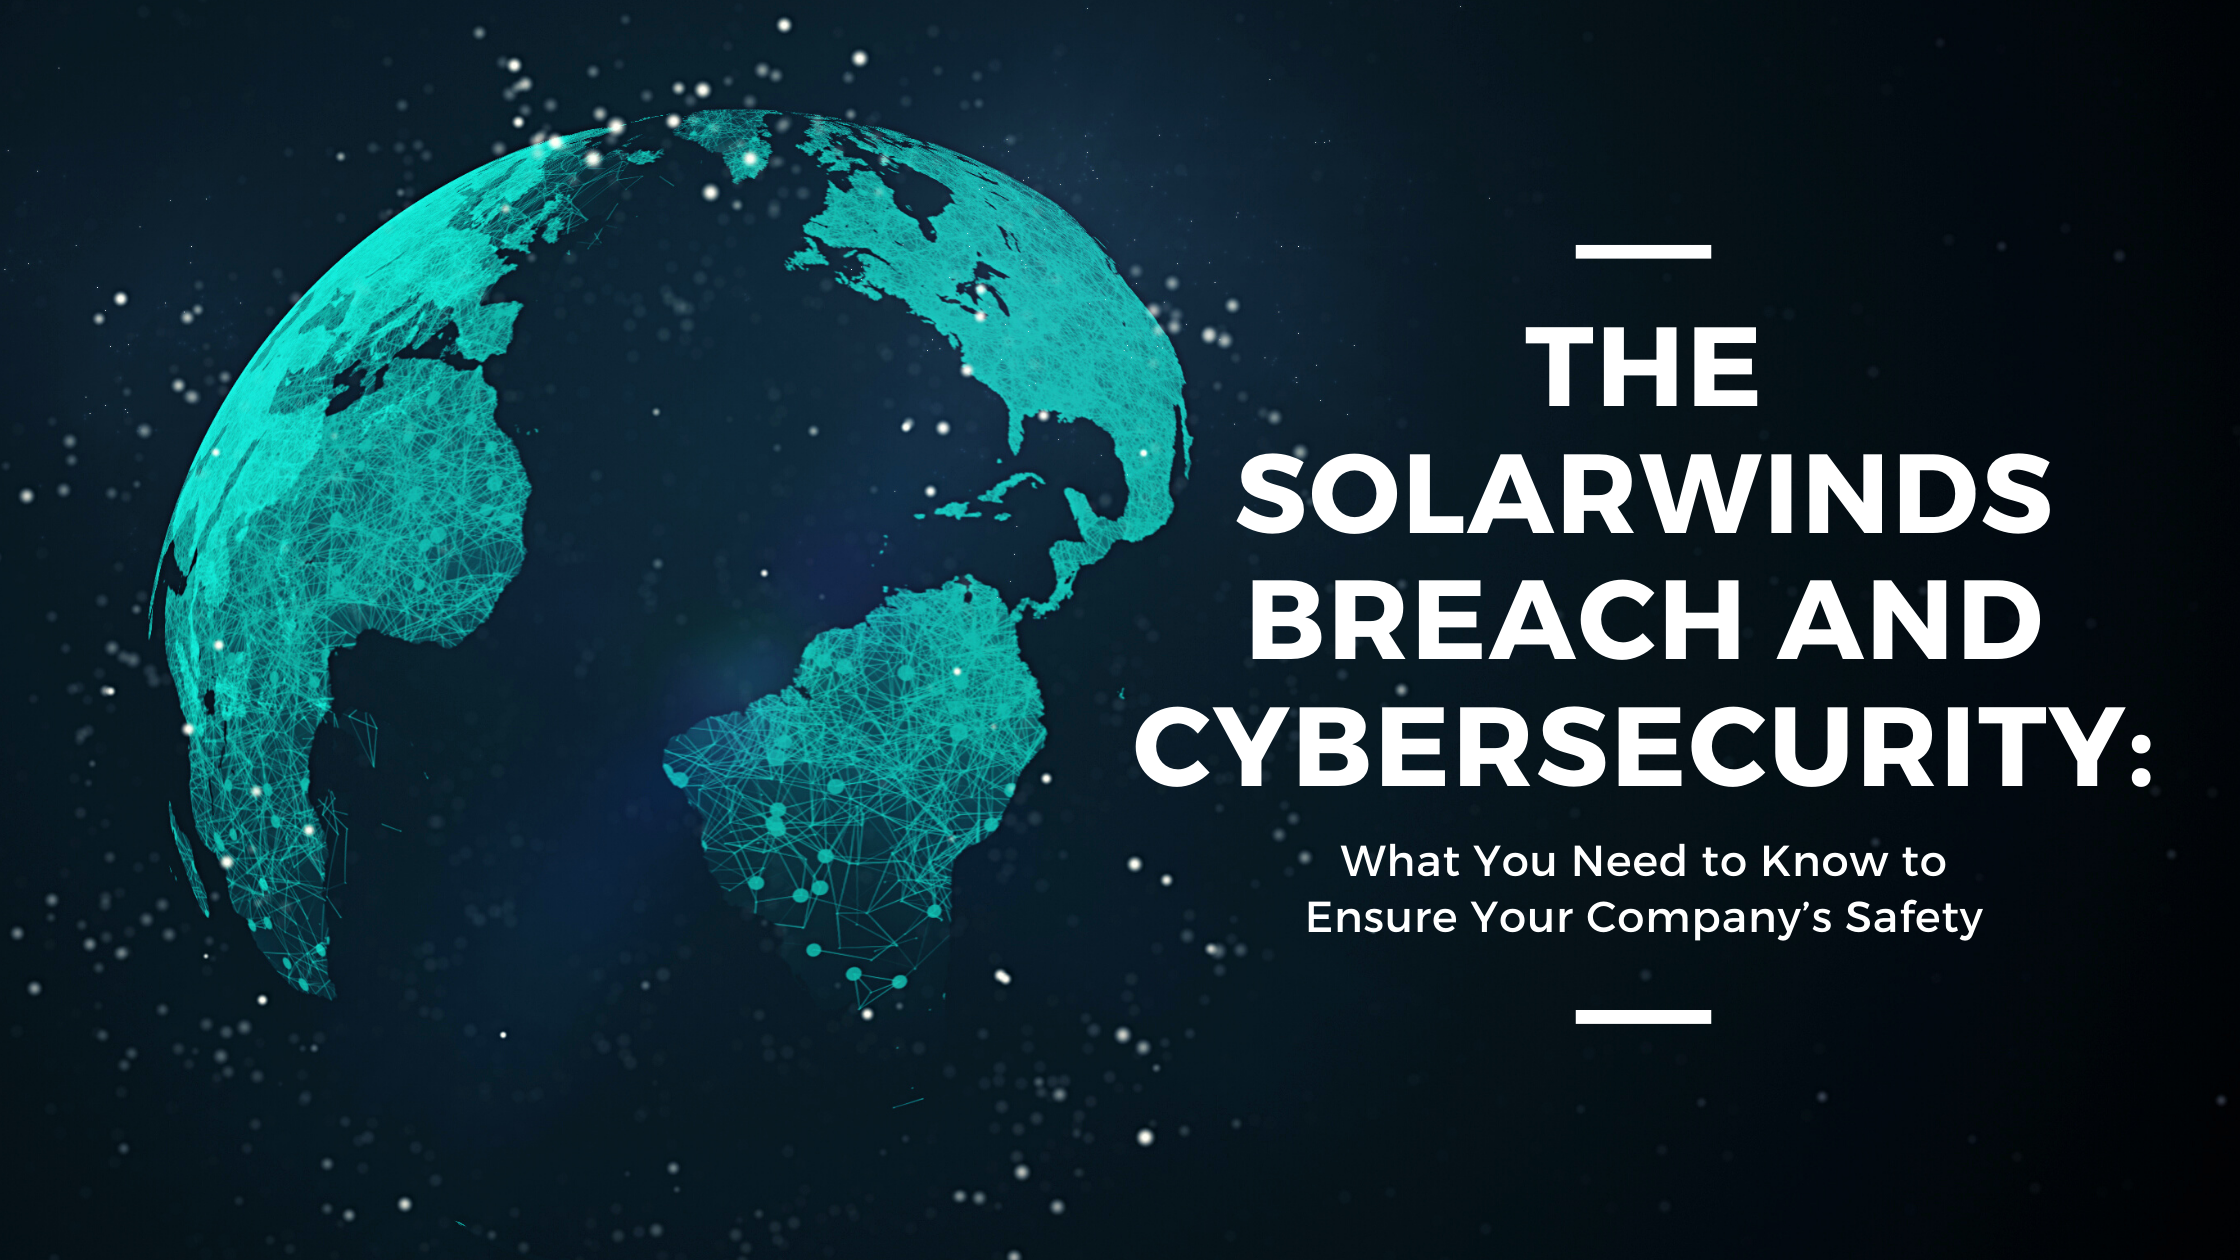 Solarwinds Breach and Cybersecurity